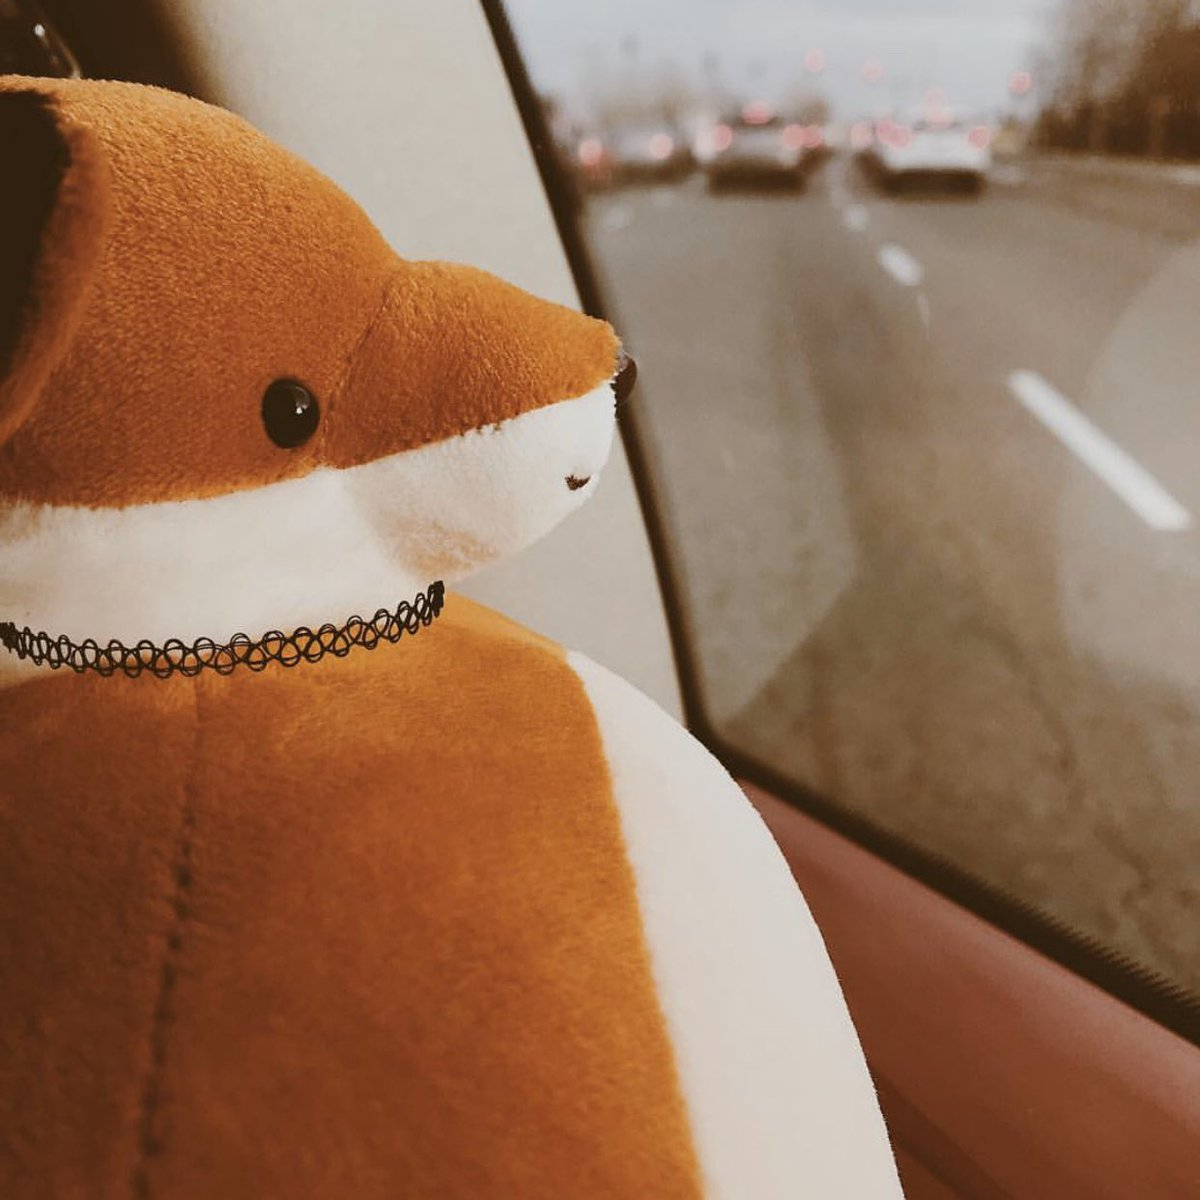 On long car rides, Bagstock likes to pretend the car is being chased by all the vehicles in the rear window. ⁣ ⁣ Sometimes, those cars catch up and even pass. But Bagstock just waves as they go by. He's not a sore loser. ⁣ ⁣ 📷: @tinyheadedcafe #BagstockTheFox #THK #toys